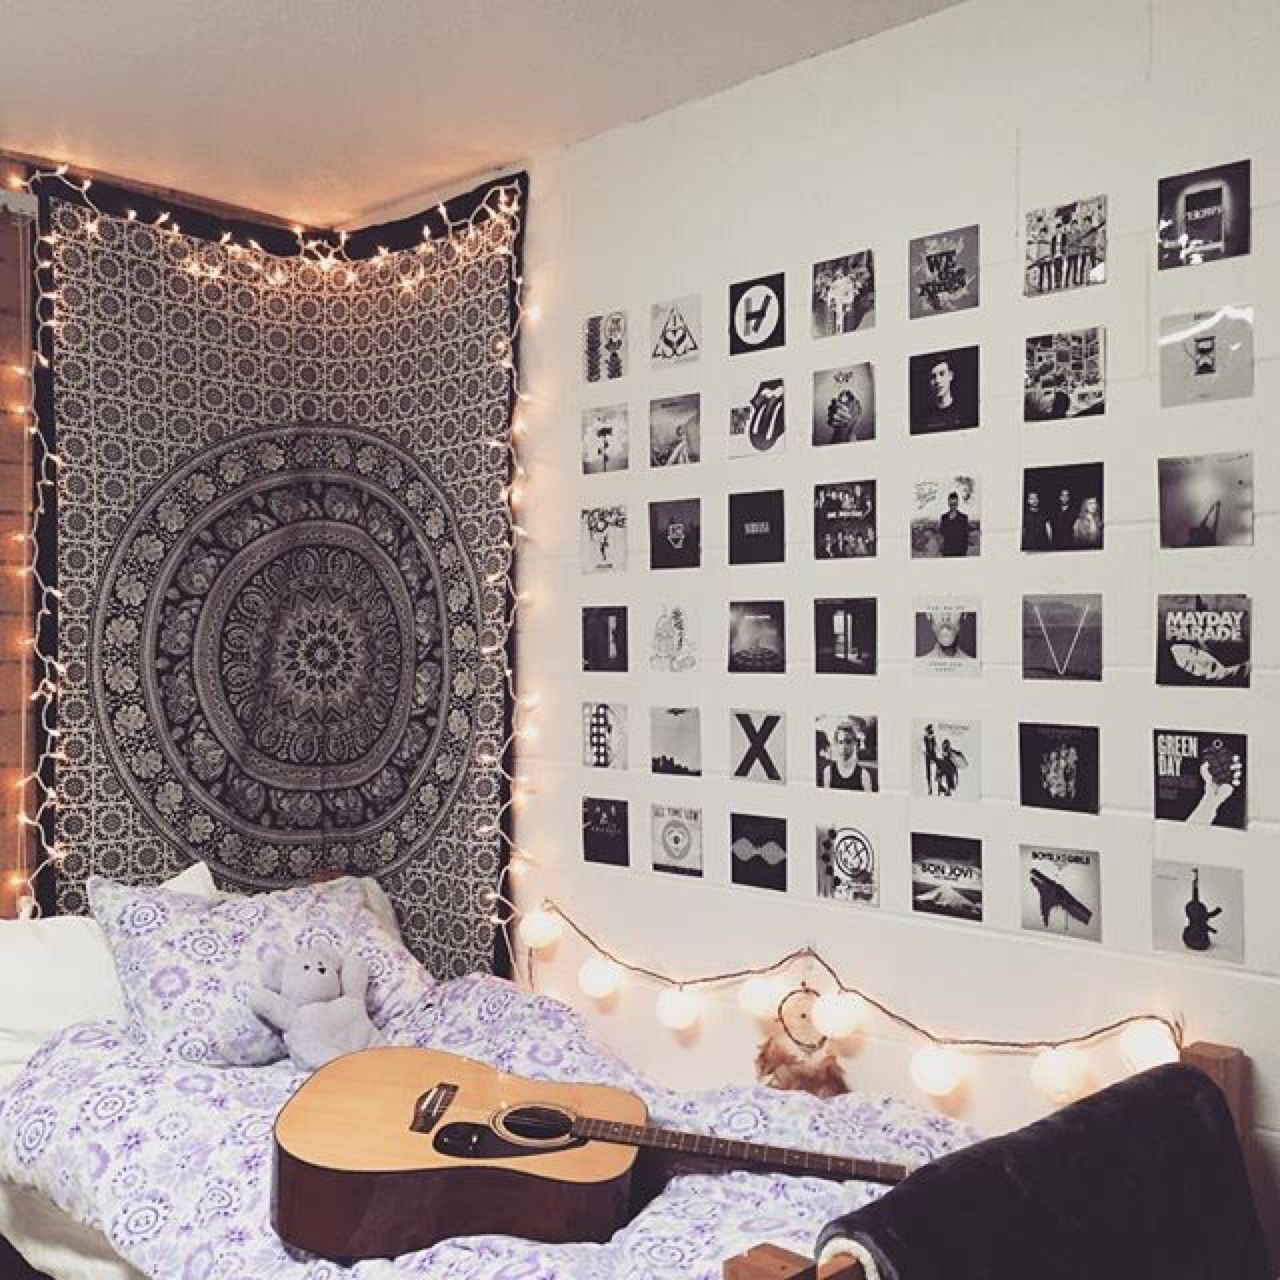 Bedroom wall decor ideas tumblr - Source Myroomspo Tapestry Bedroom Tumblr Bedroom Decoration Room Decor Diy Room Inspiration Poster Lights Fairy Lights